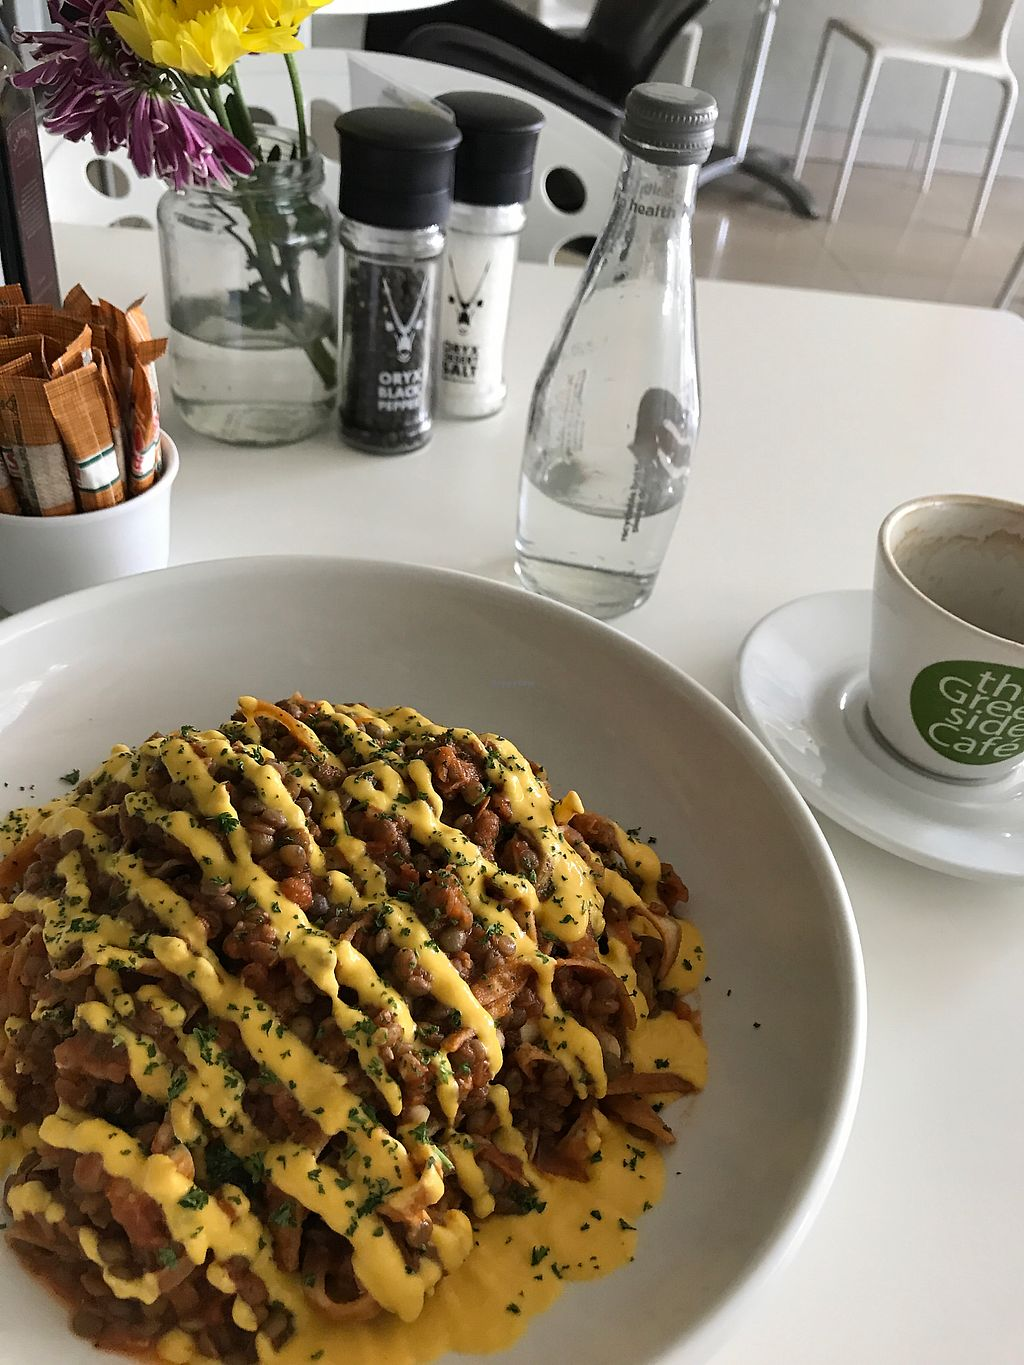 """Photo of The Greenside Cafe  by <a href=""""/members/profile/leylana"""">leylana</a> <br/>Bolognese chewy pasta. Top ? <br/> September 9, 2017  - <a href='/contact/abuse/image/18707/302389'>Report</a>"""